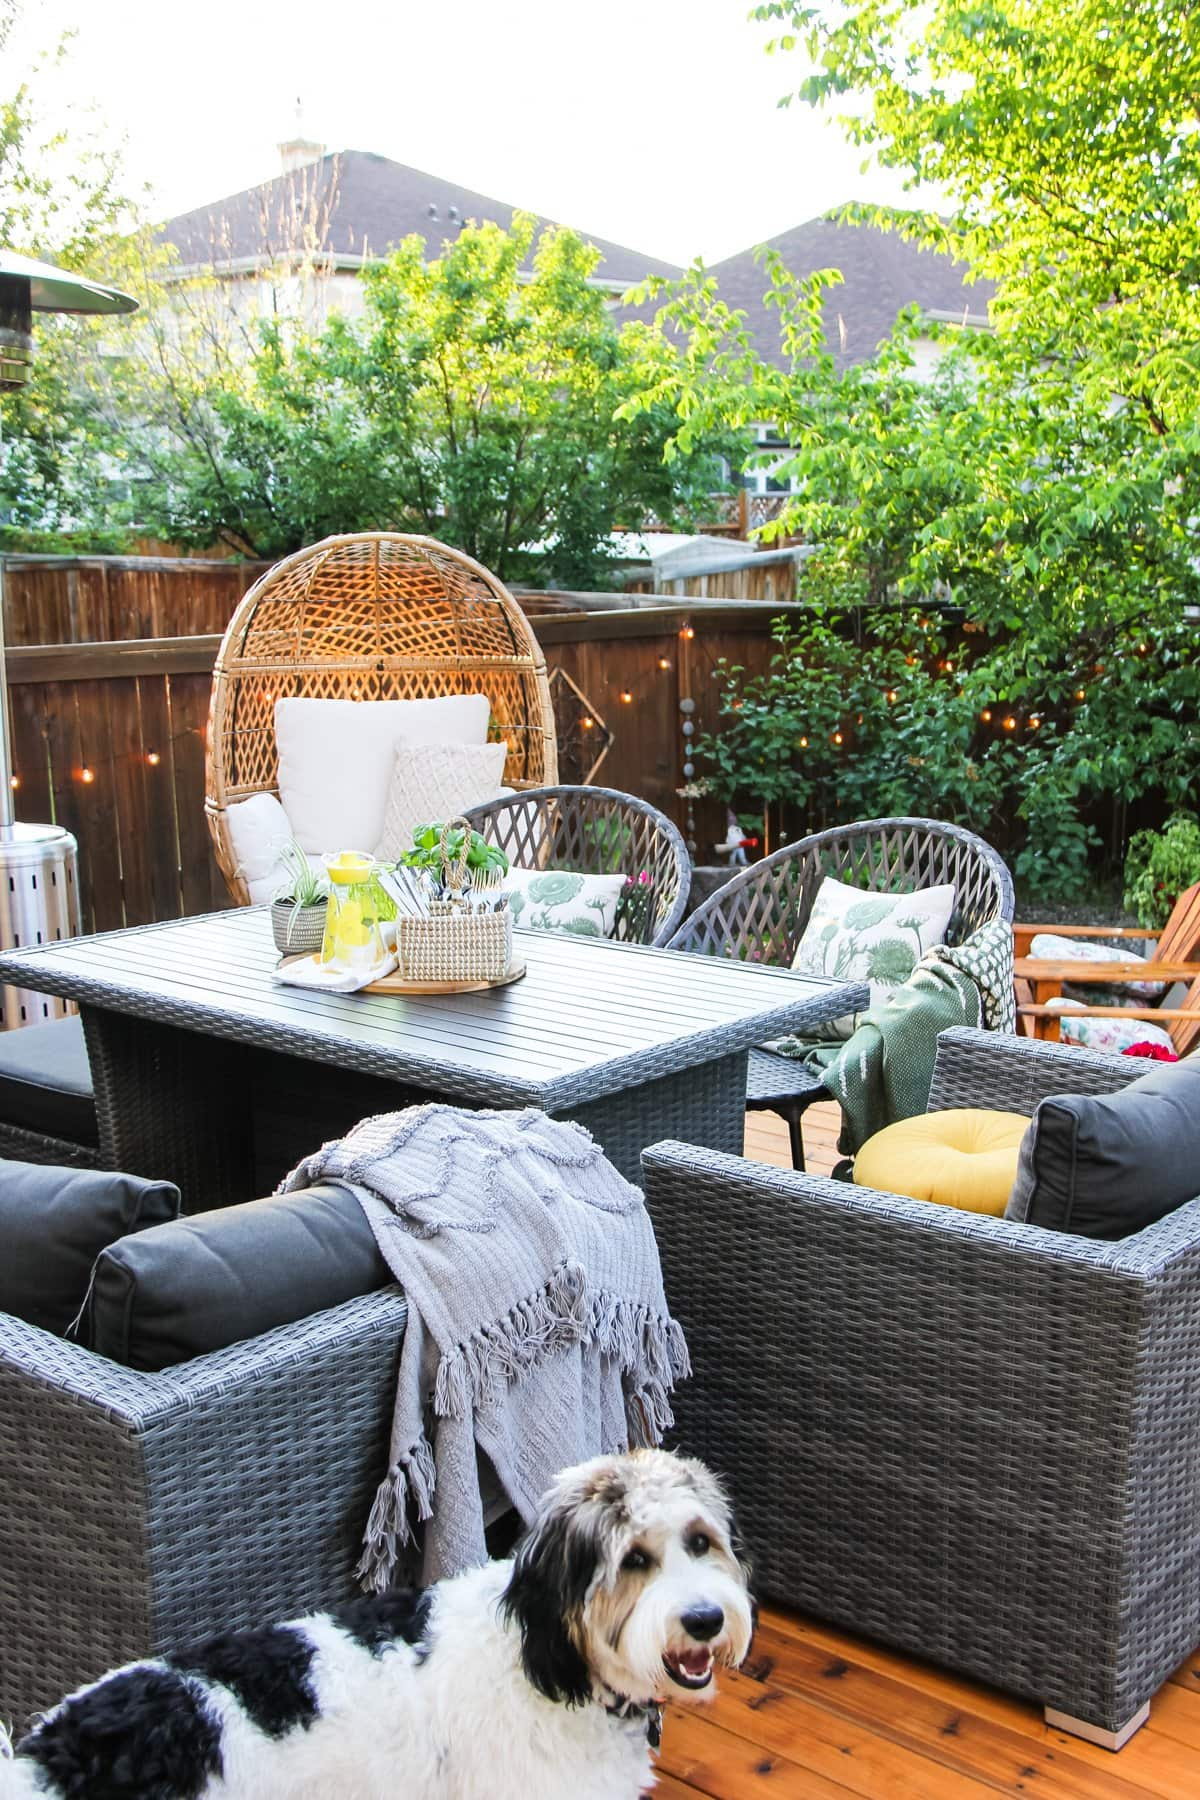 a basket of cutlery, a yellow glass jug and a basil plant sit on a table. in the background are wicker chairs and a tree with patio lights